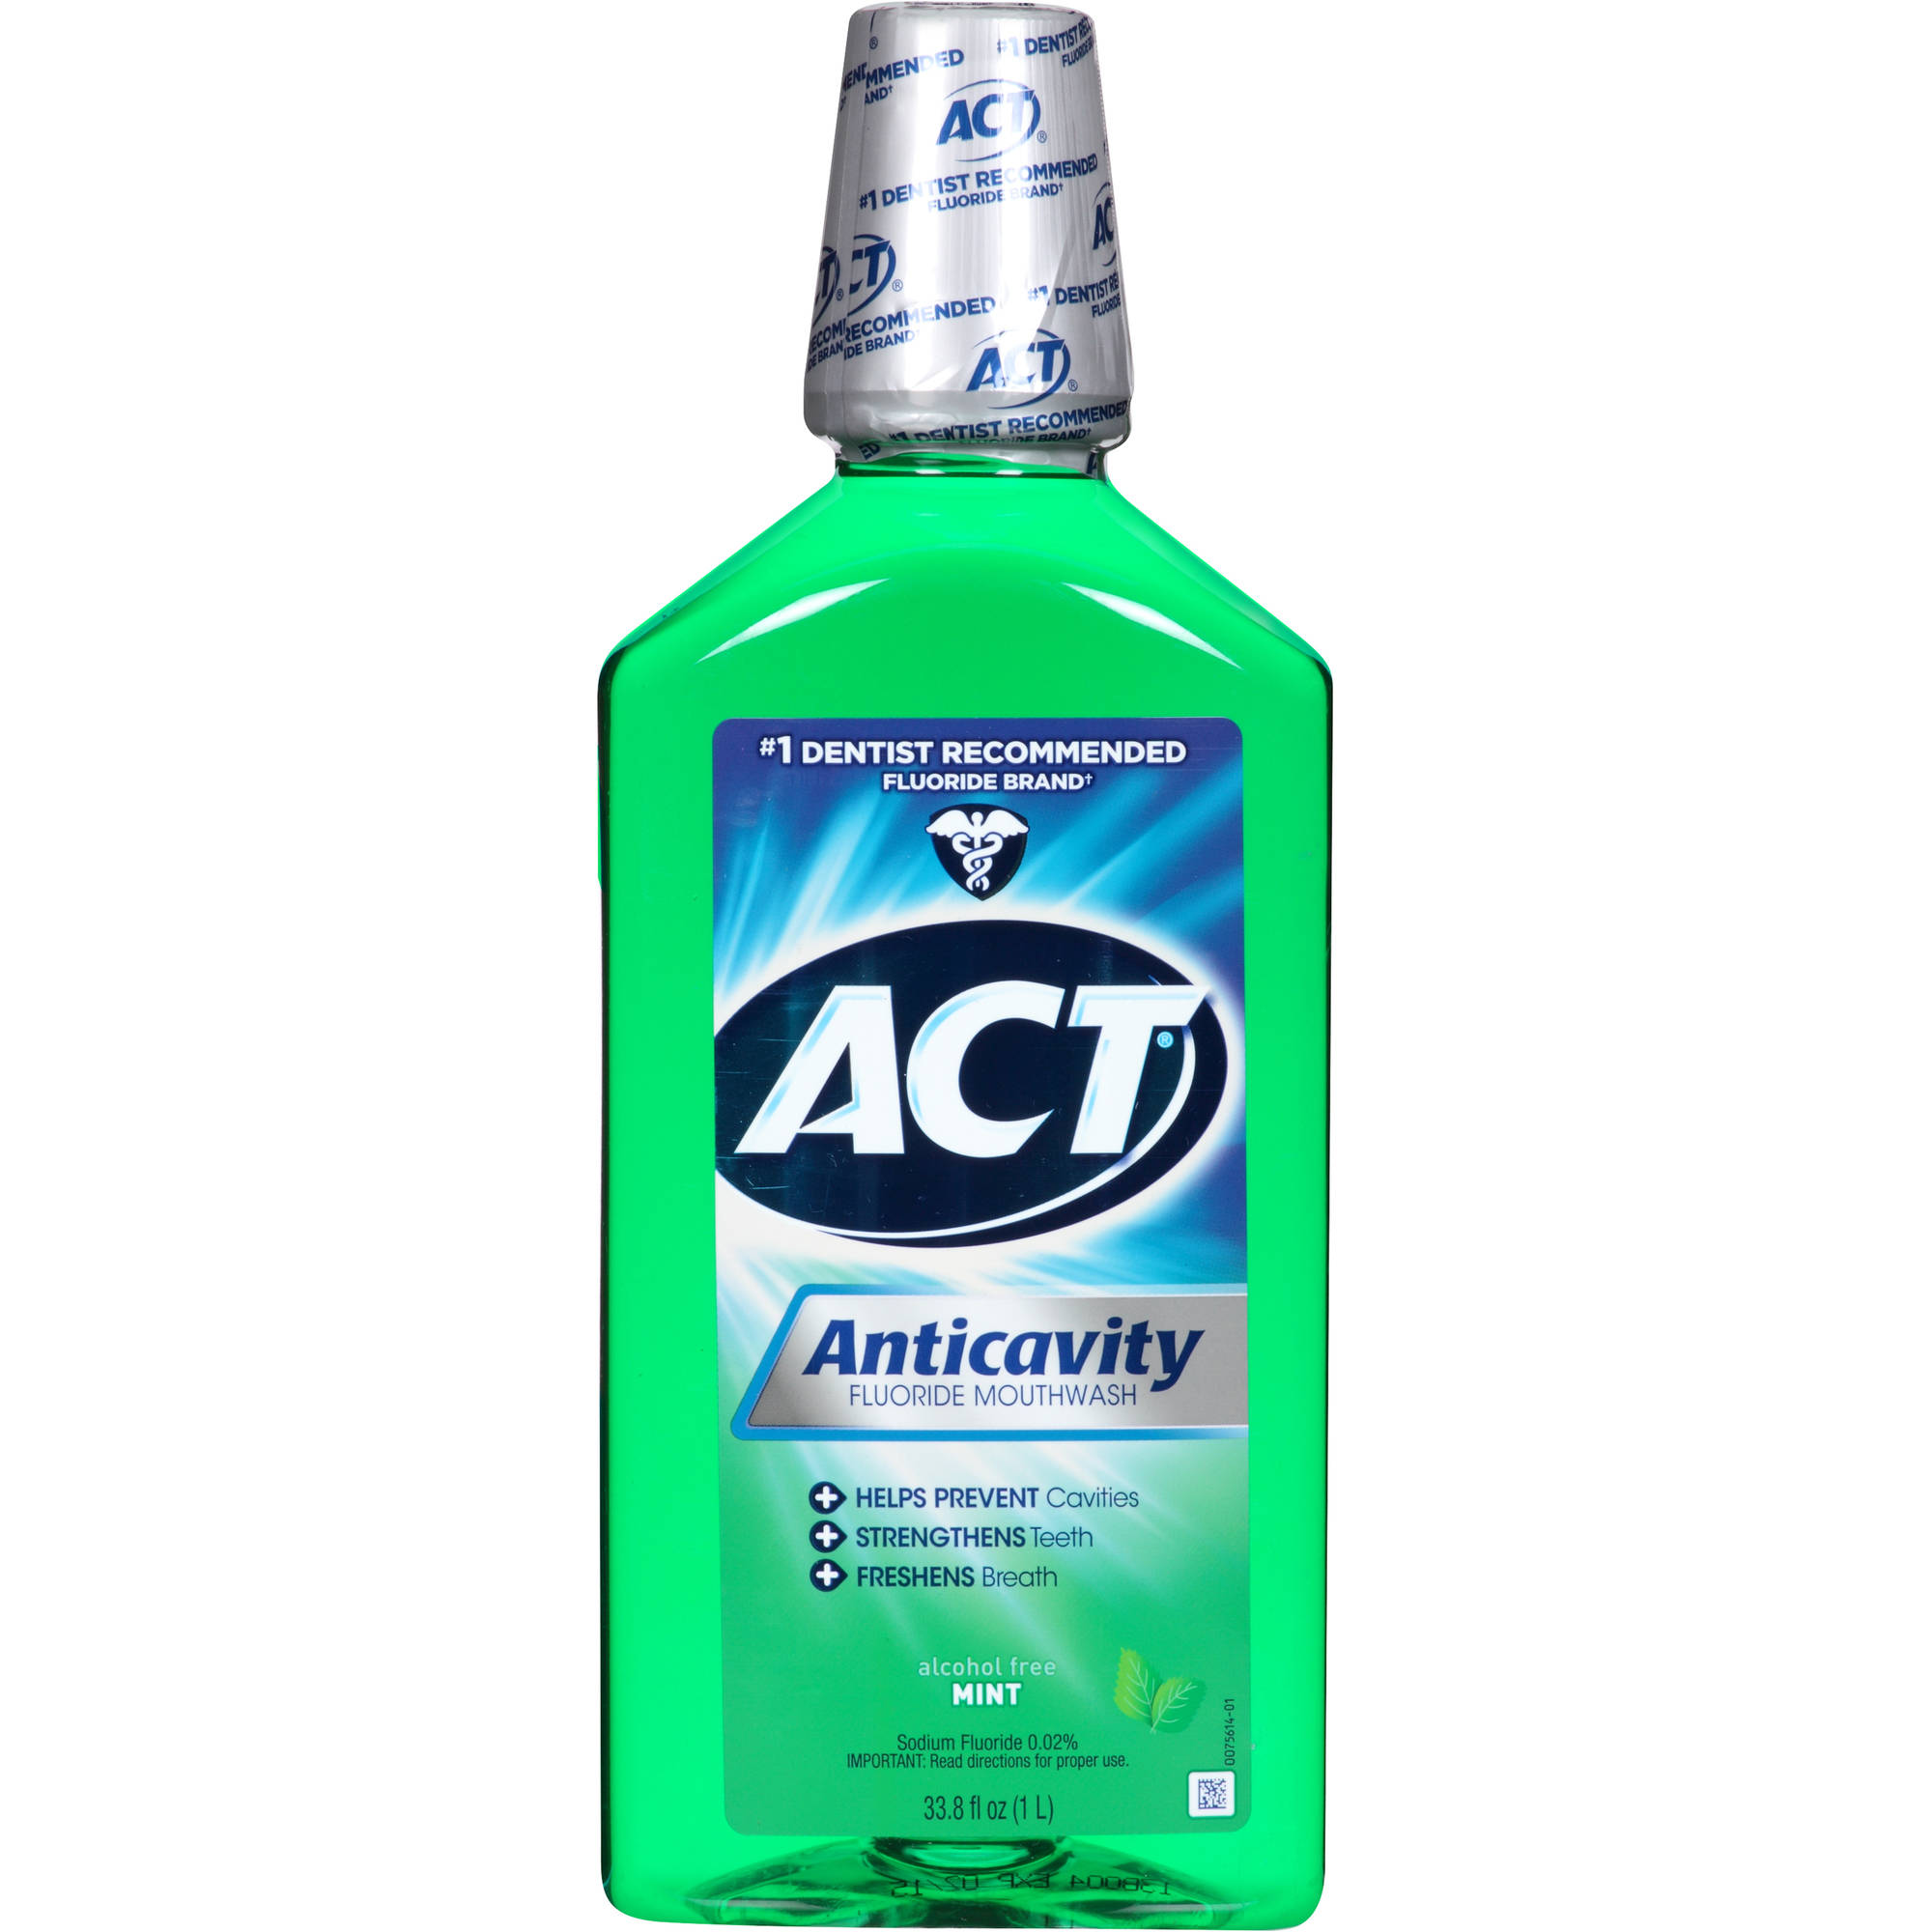 Act Mint Anticavity Fluoride Rinse, 33.8 oz